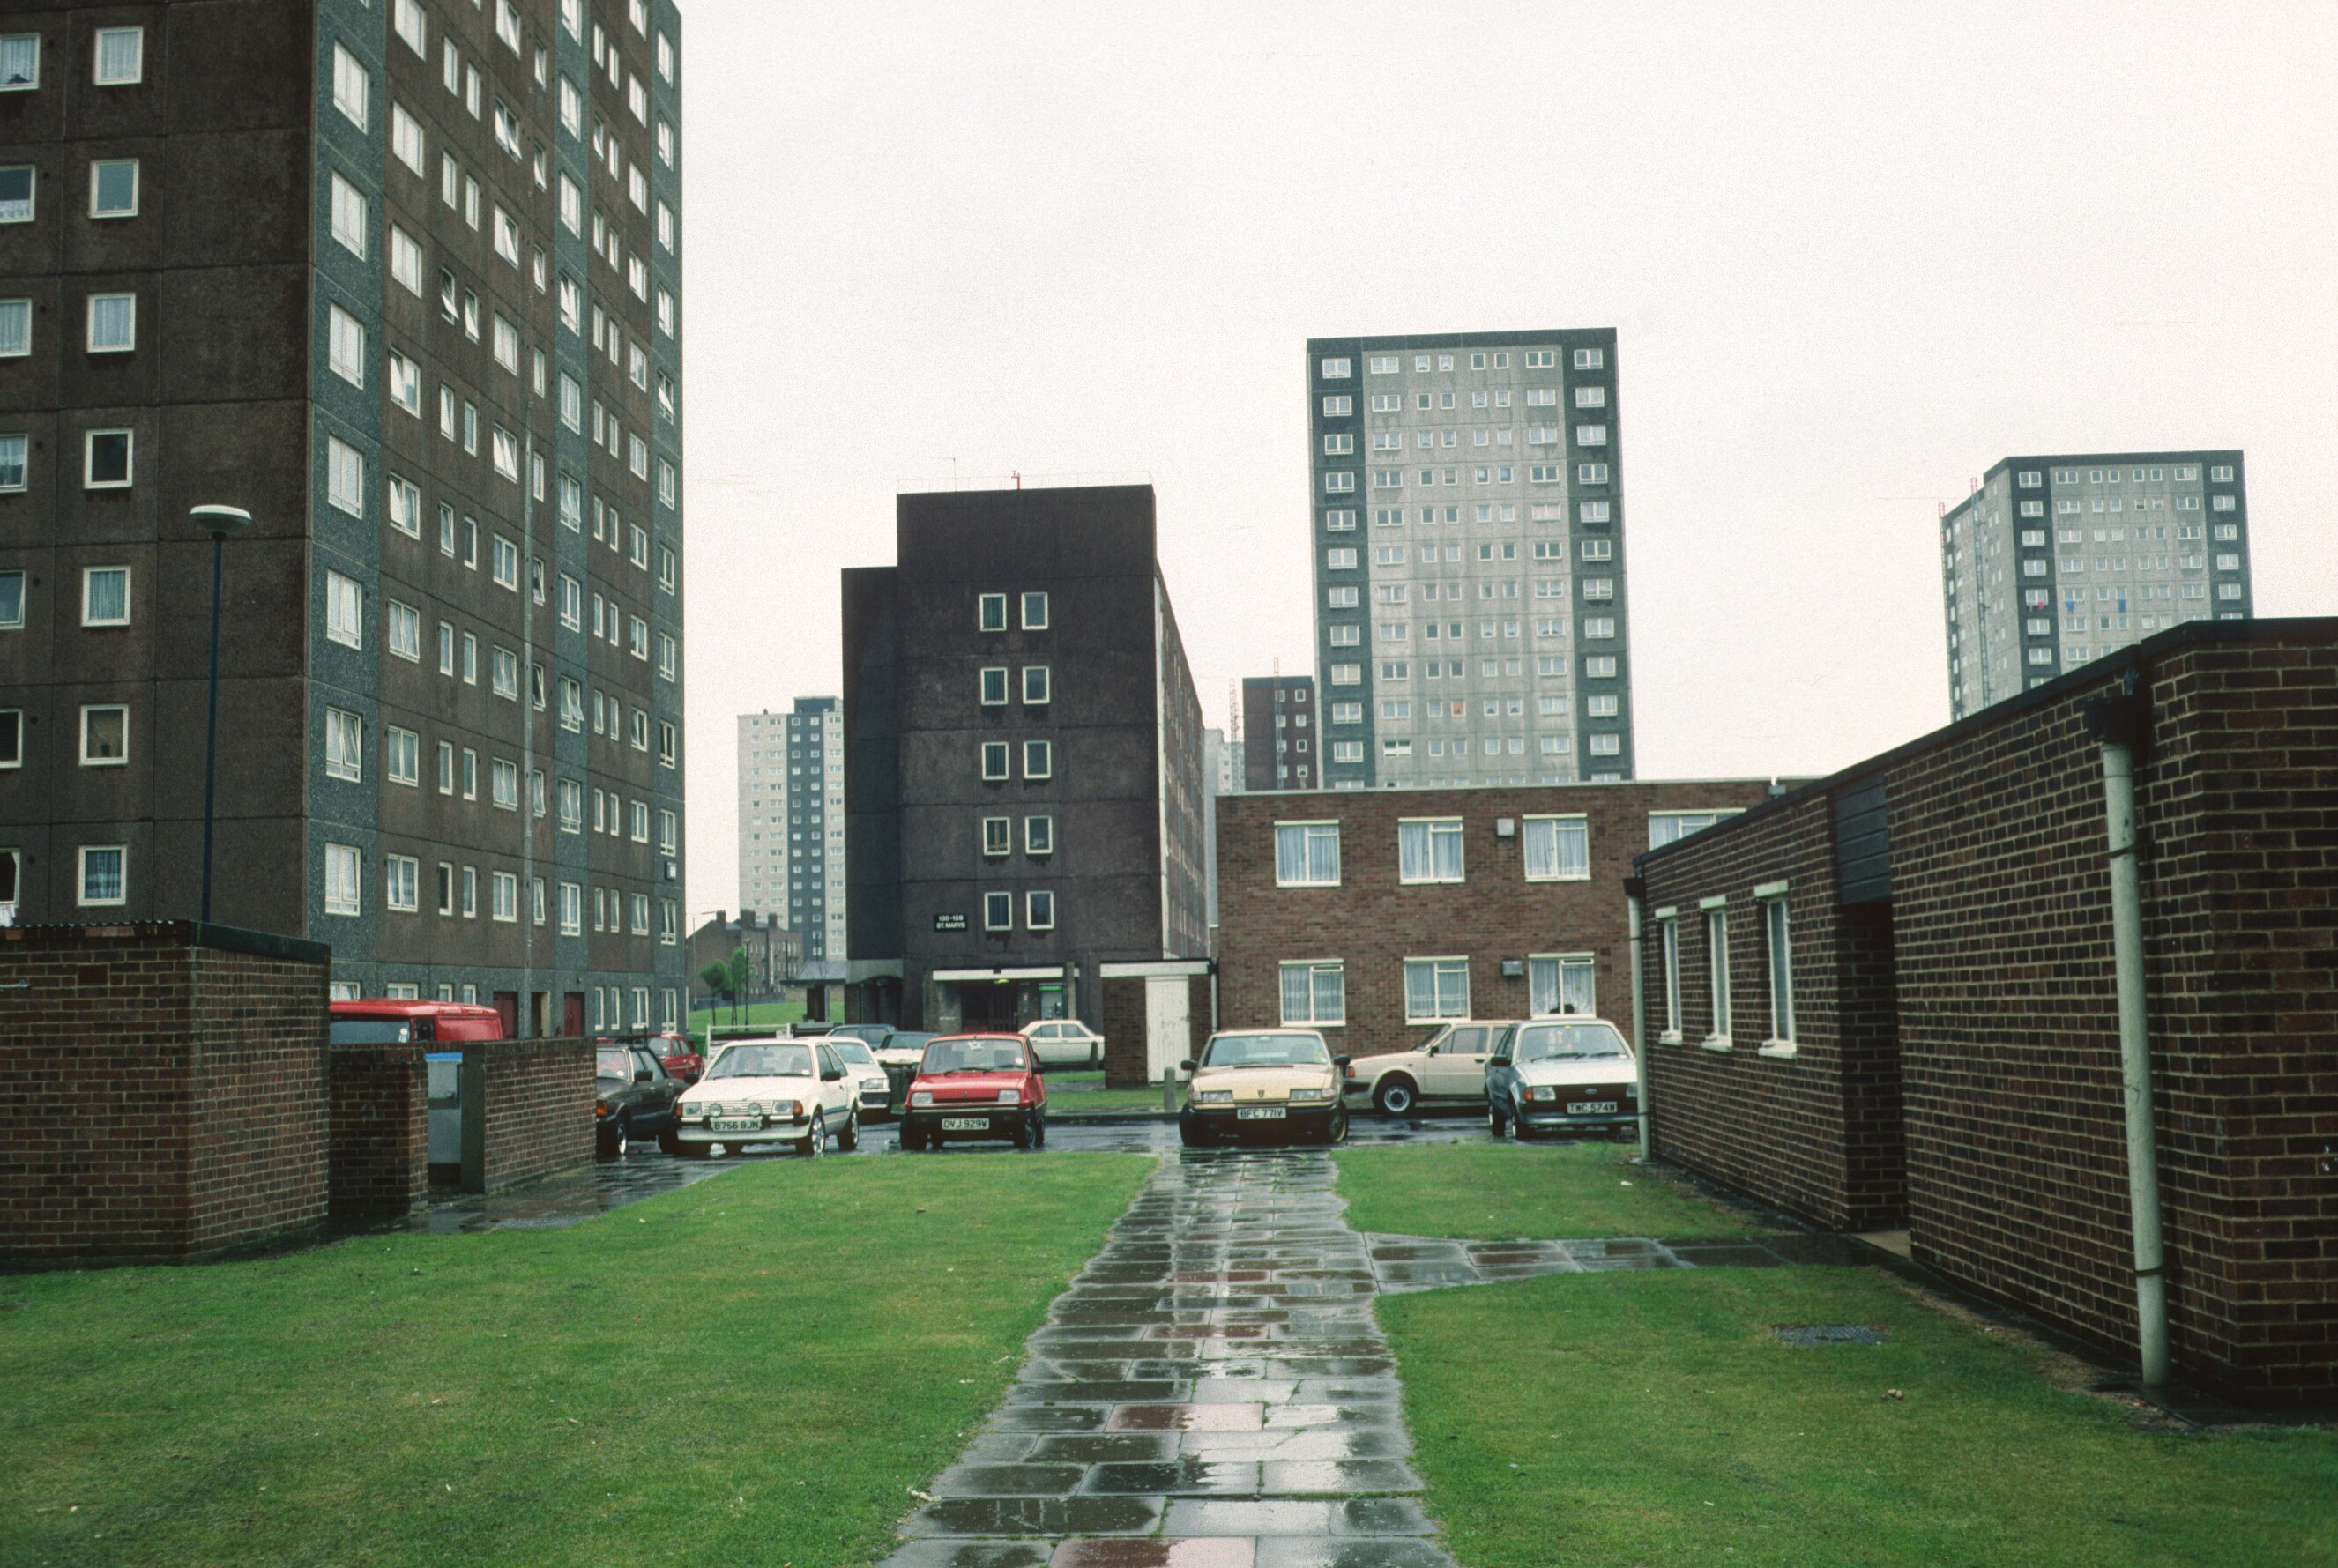 Gascoigne Redevelopment Area Stage V Tower Block